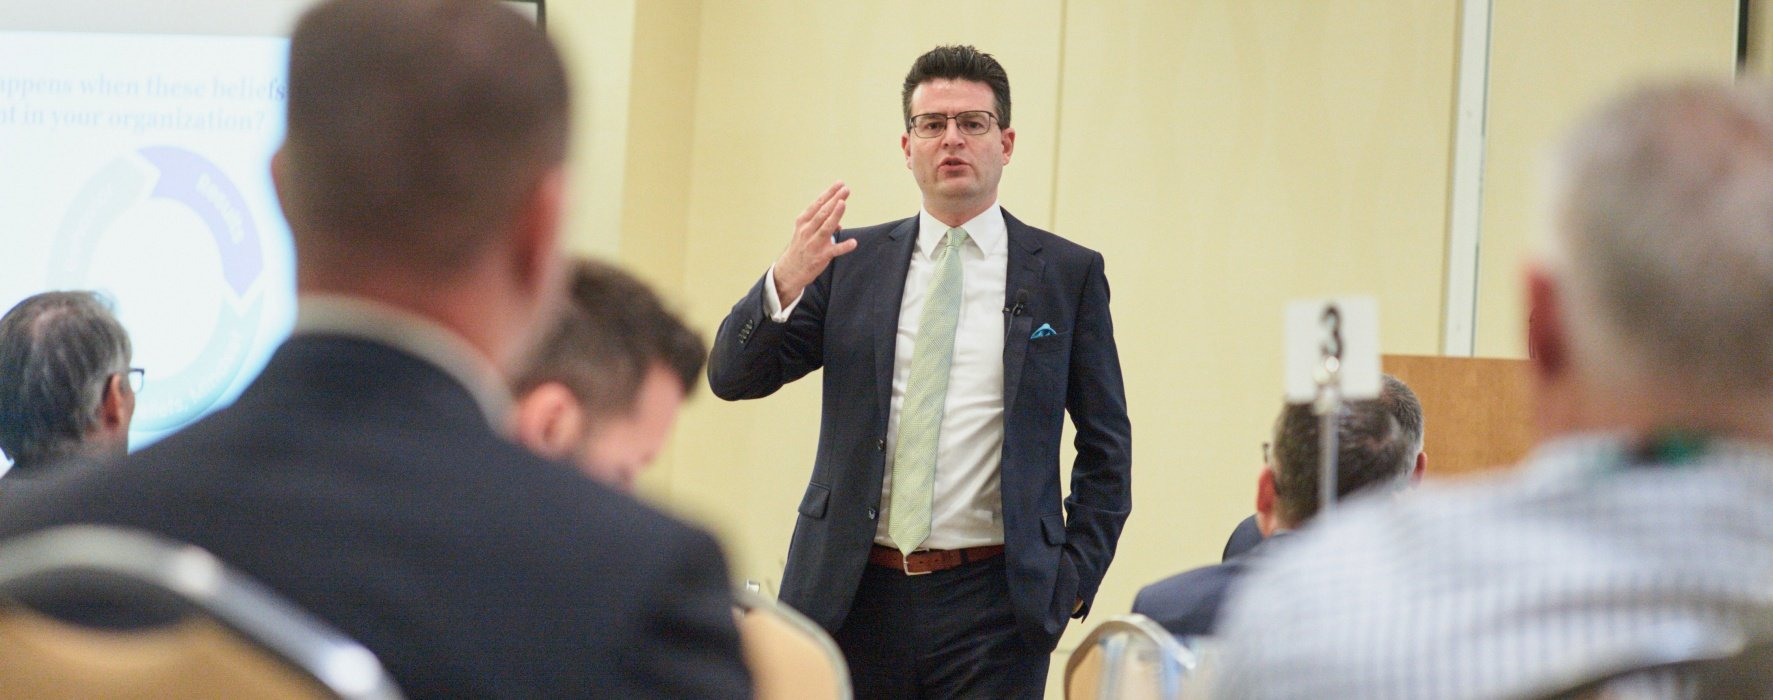 Eric Michrowski conference speaking